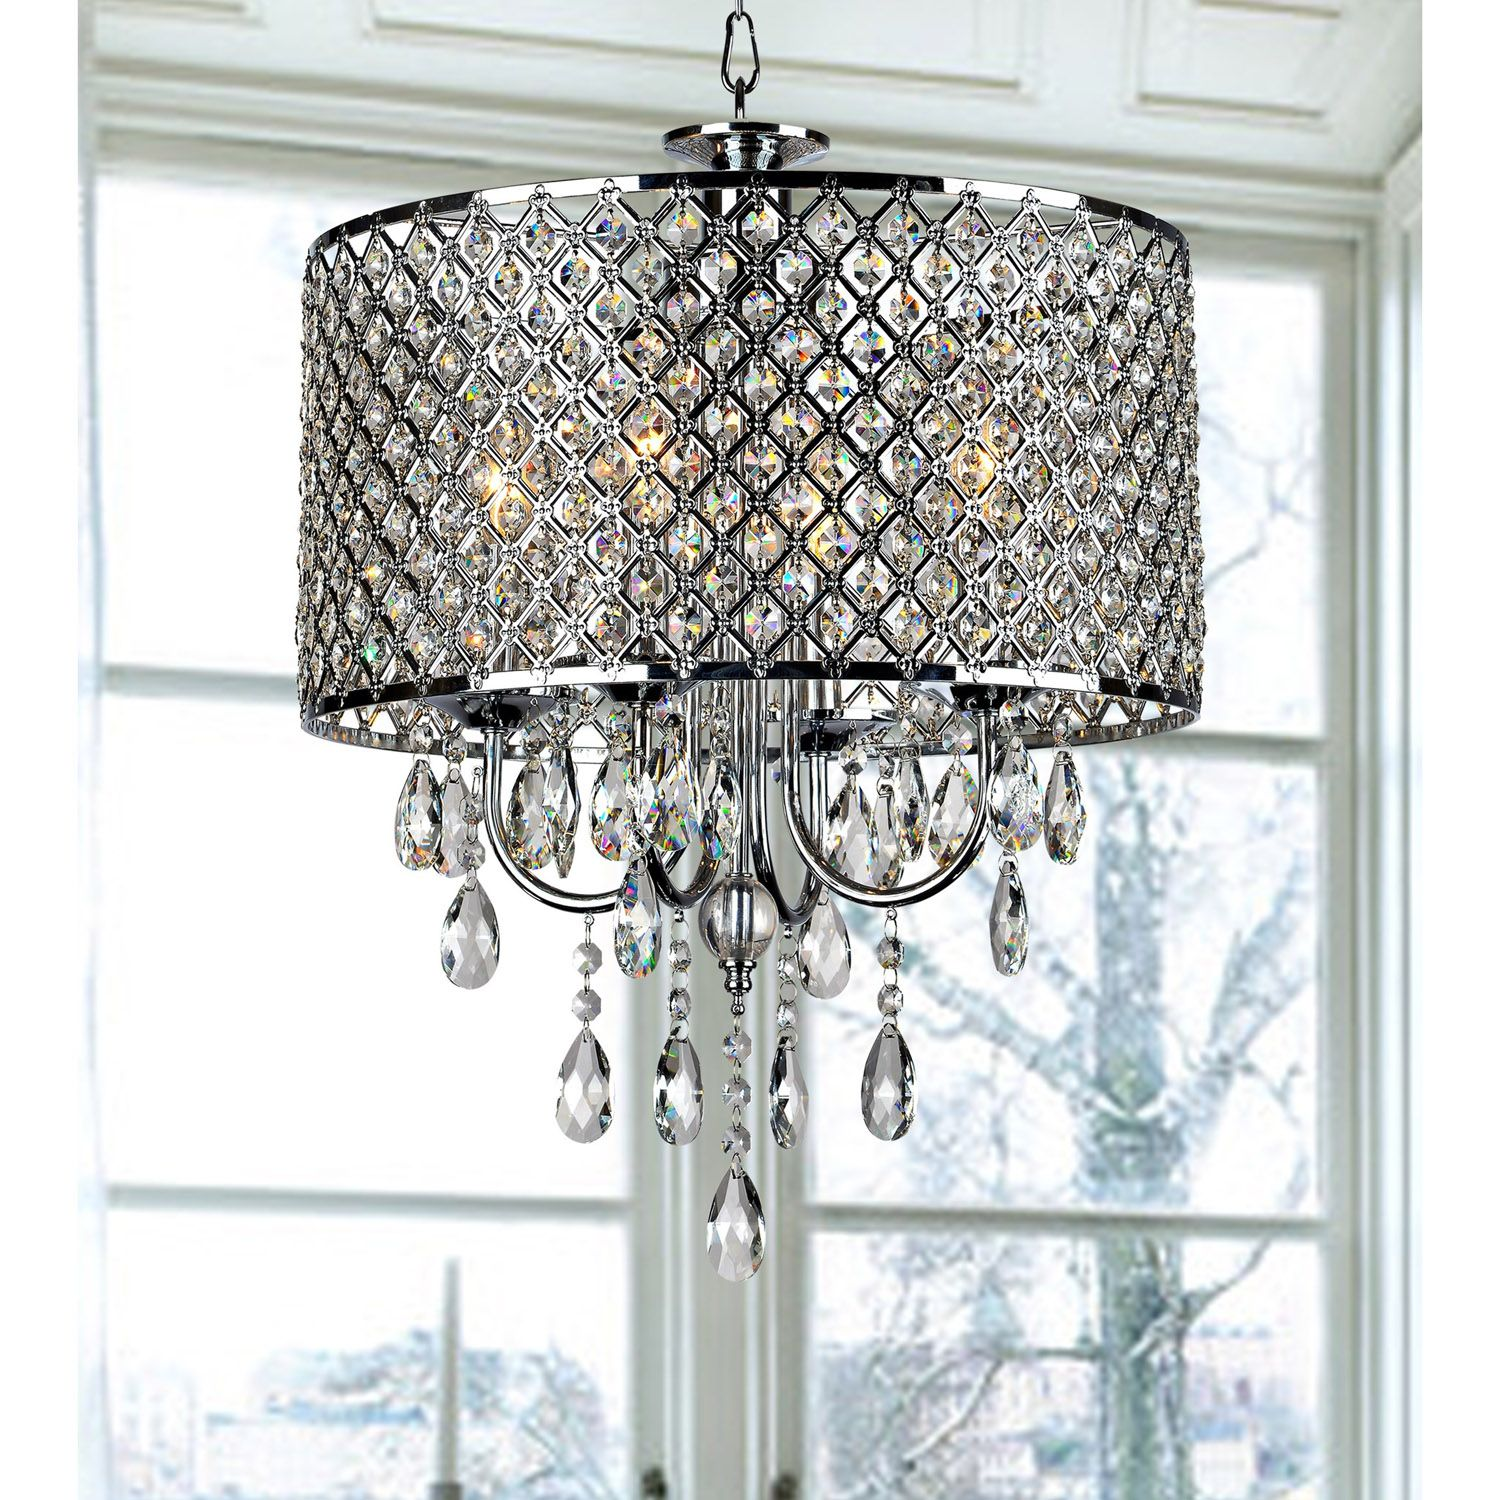 In stock drum chrome round chandelier crystal modern 4 lights in stock drum chrome round chandelier crystal modern 4 lights pendant lamp lighting roomsparkle as diamonds arubaitofo Images